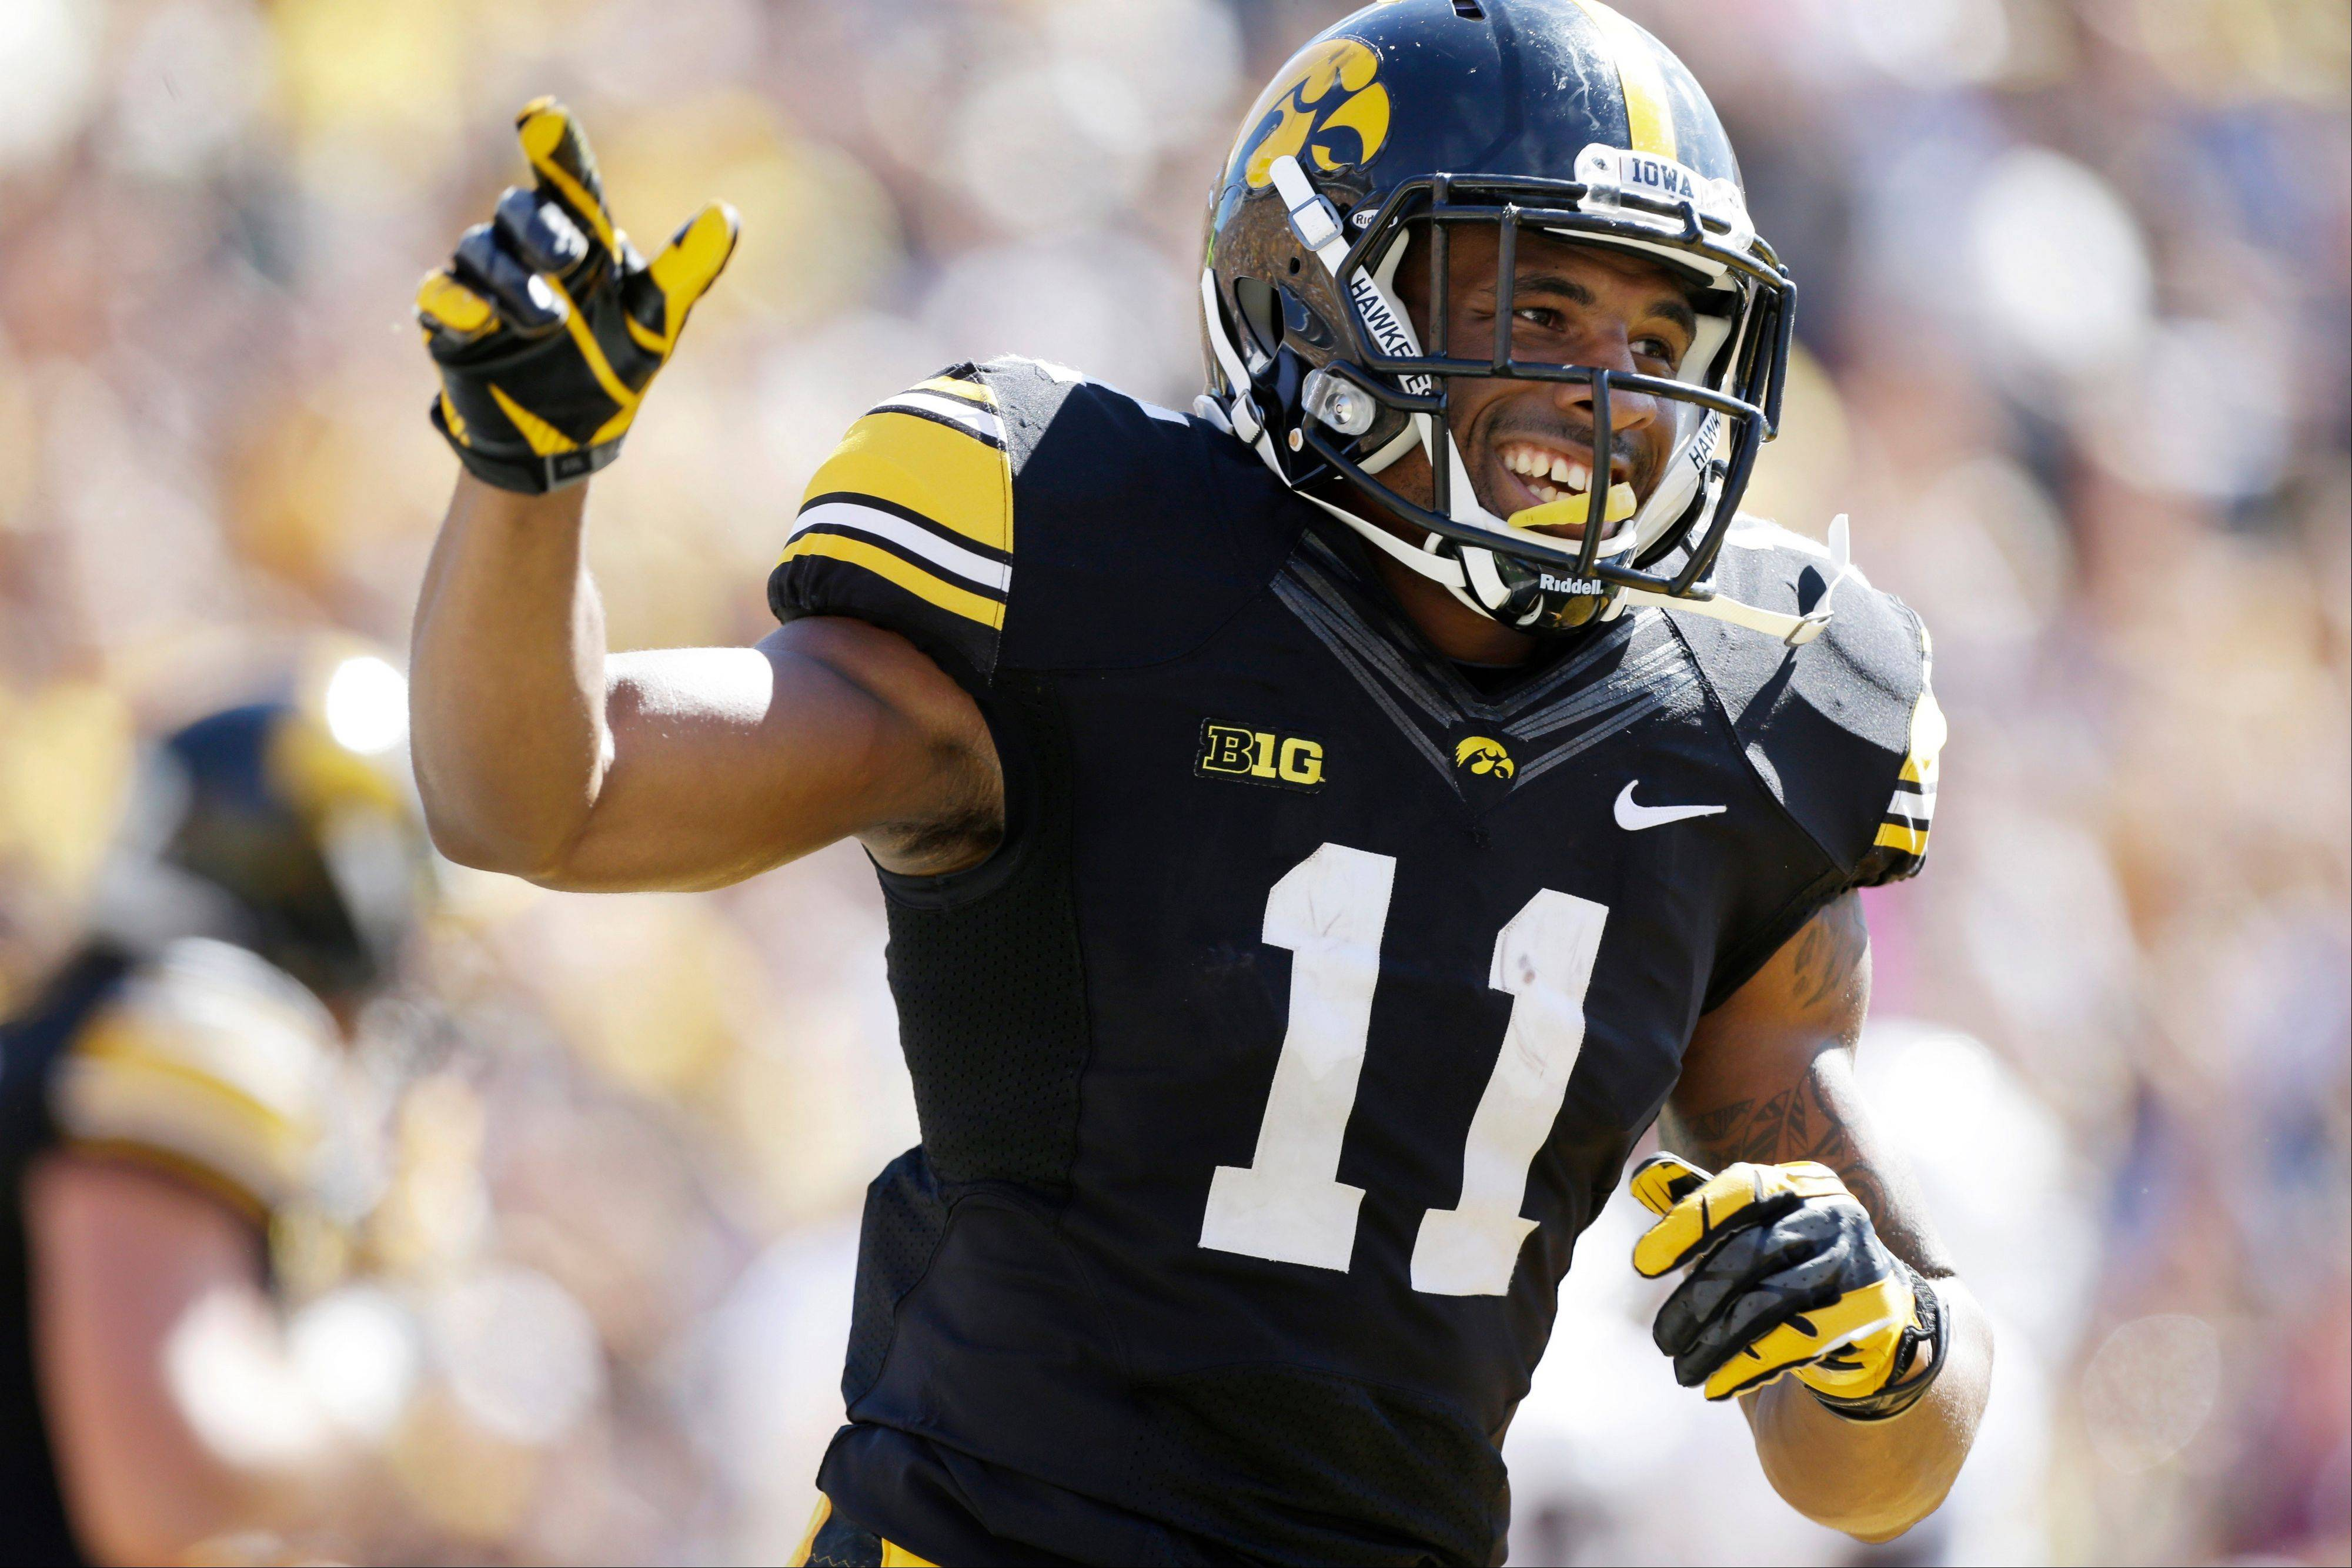 Hawkeyes roll past Western Michigan 59-3